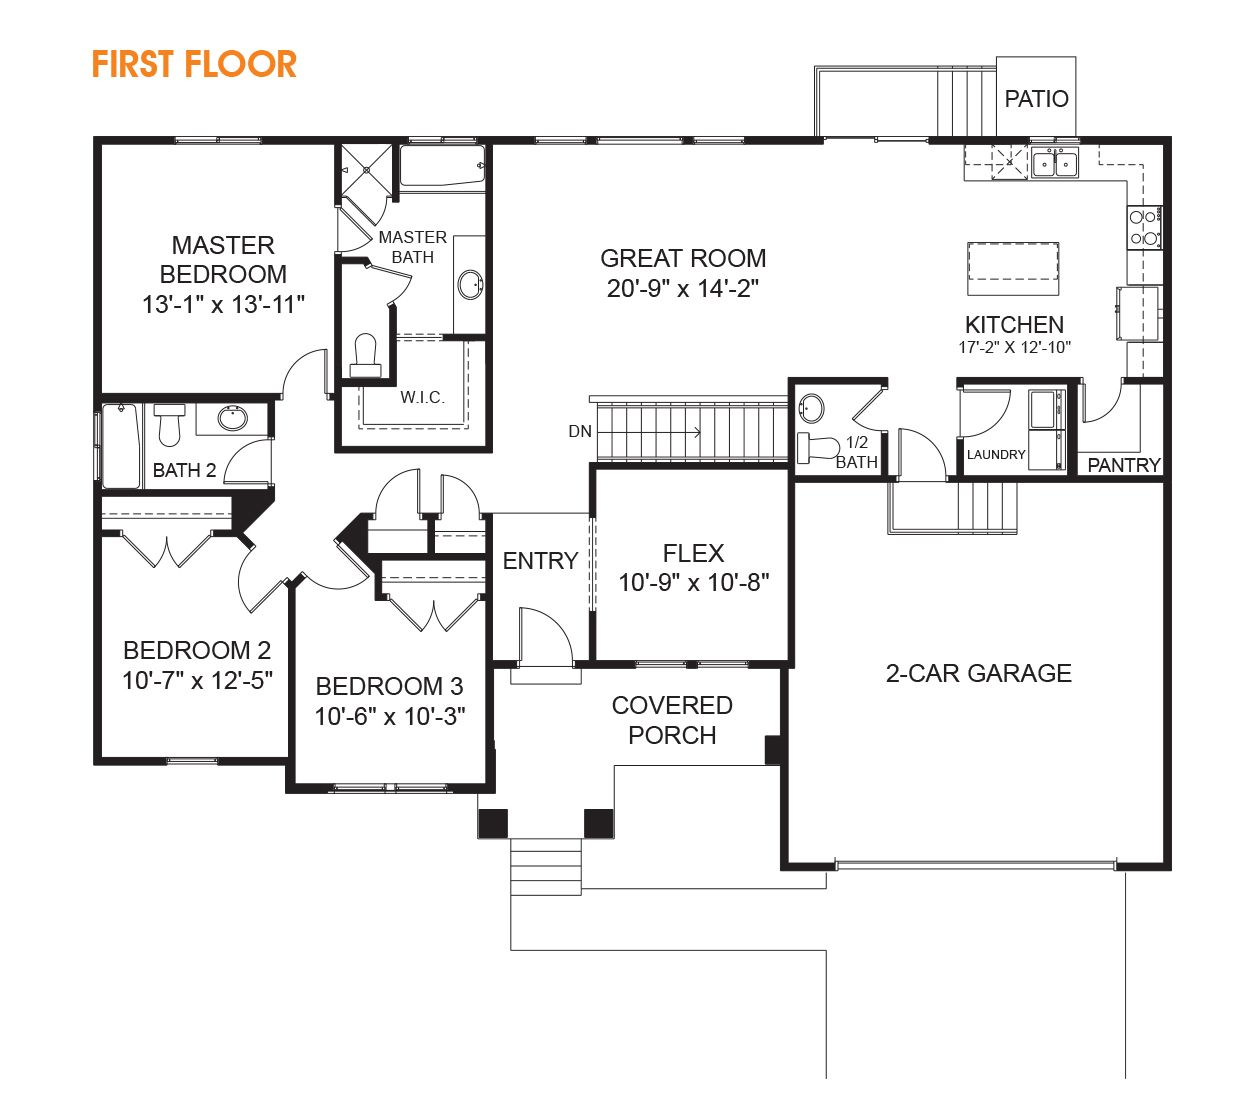 3 Bedroom Rambler Floor Plan For Your New Utah Home The Hailey Is Just What You Are Looking For In A Ramble Basement House Plans Floor Plans Floor Plans Ranch